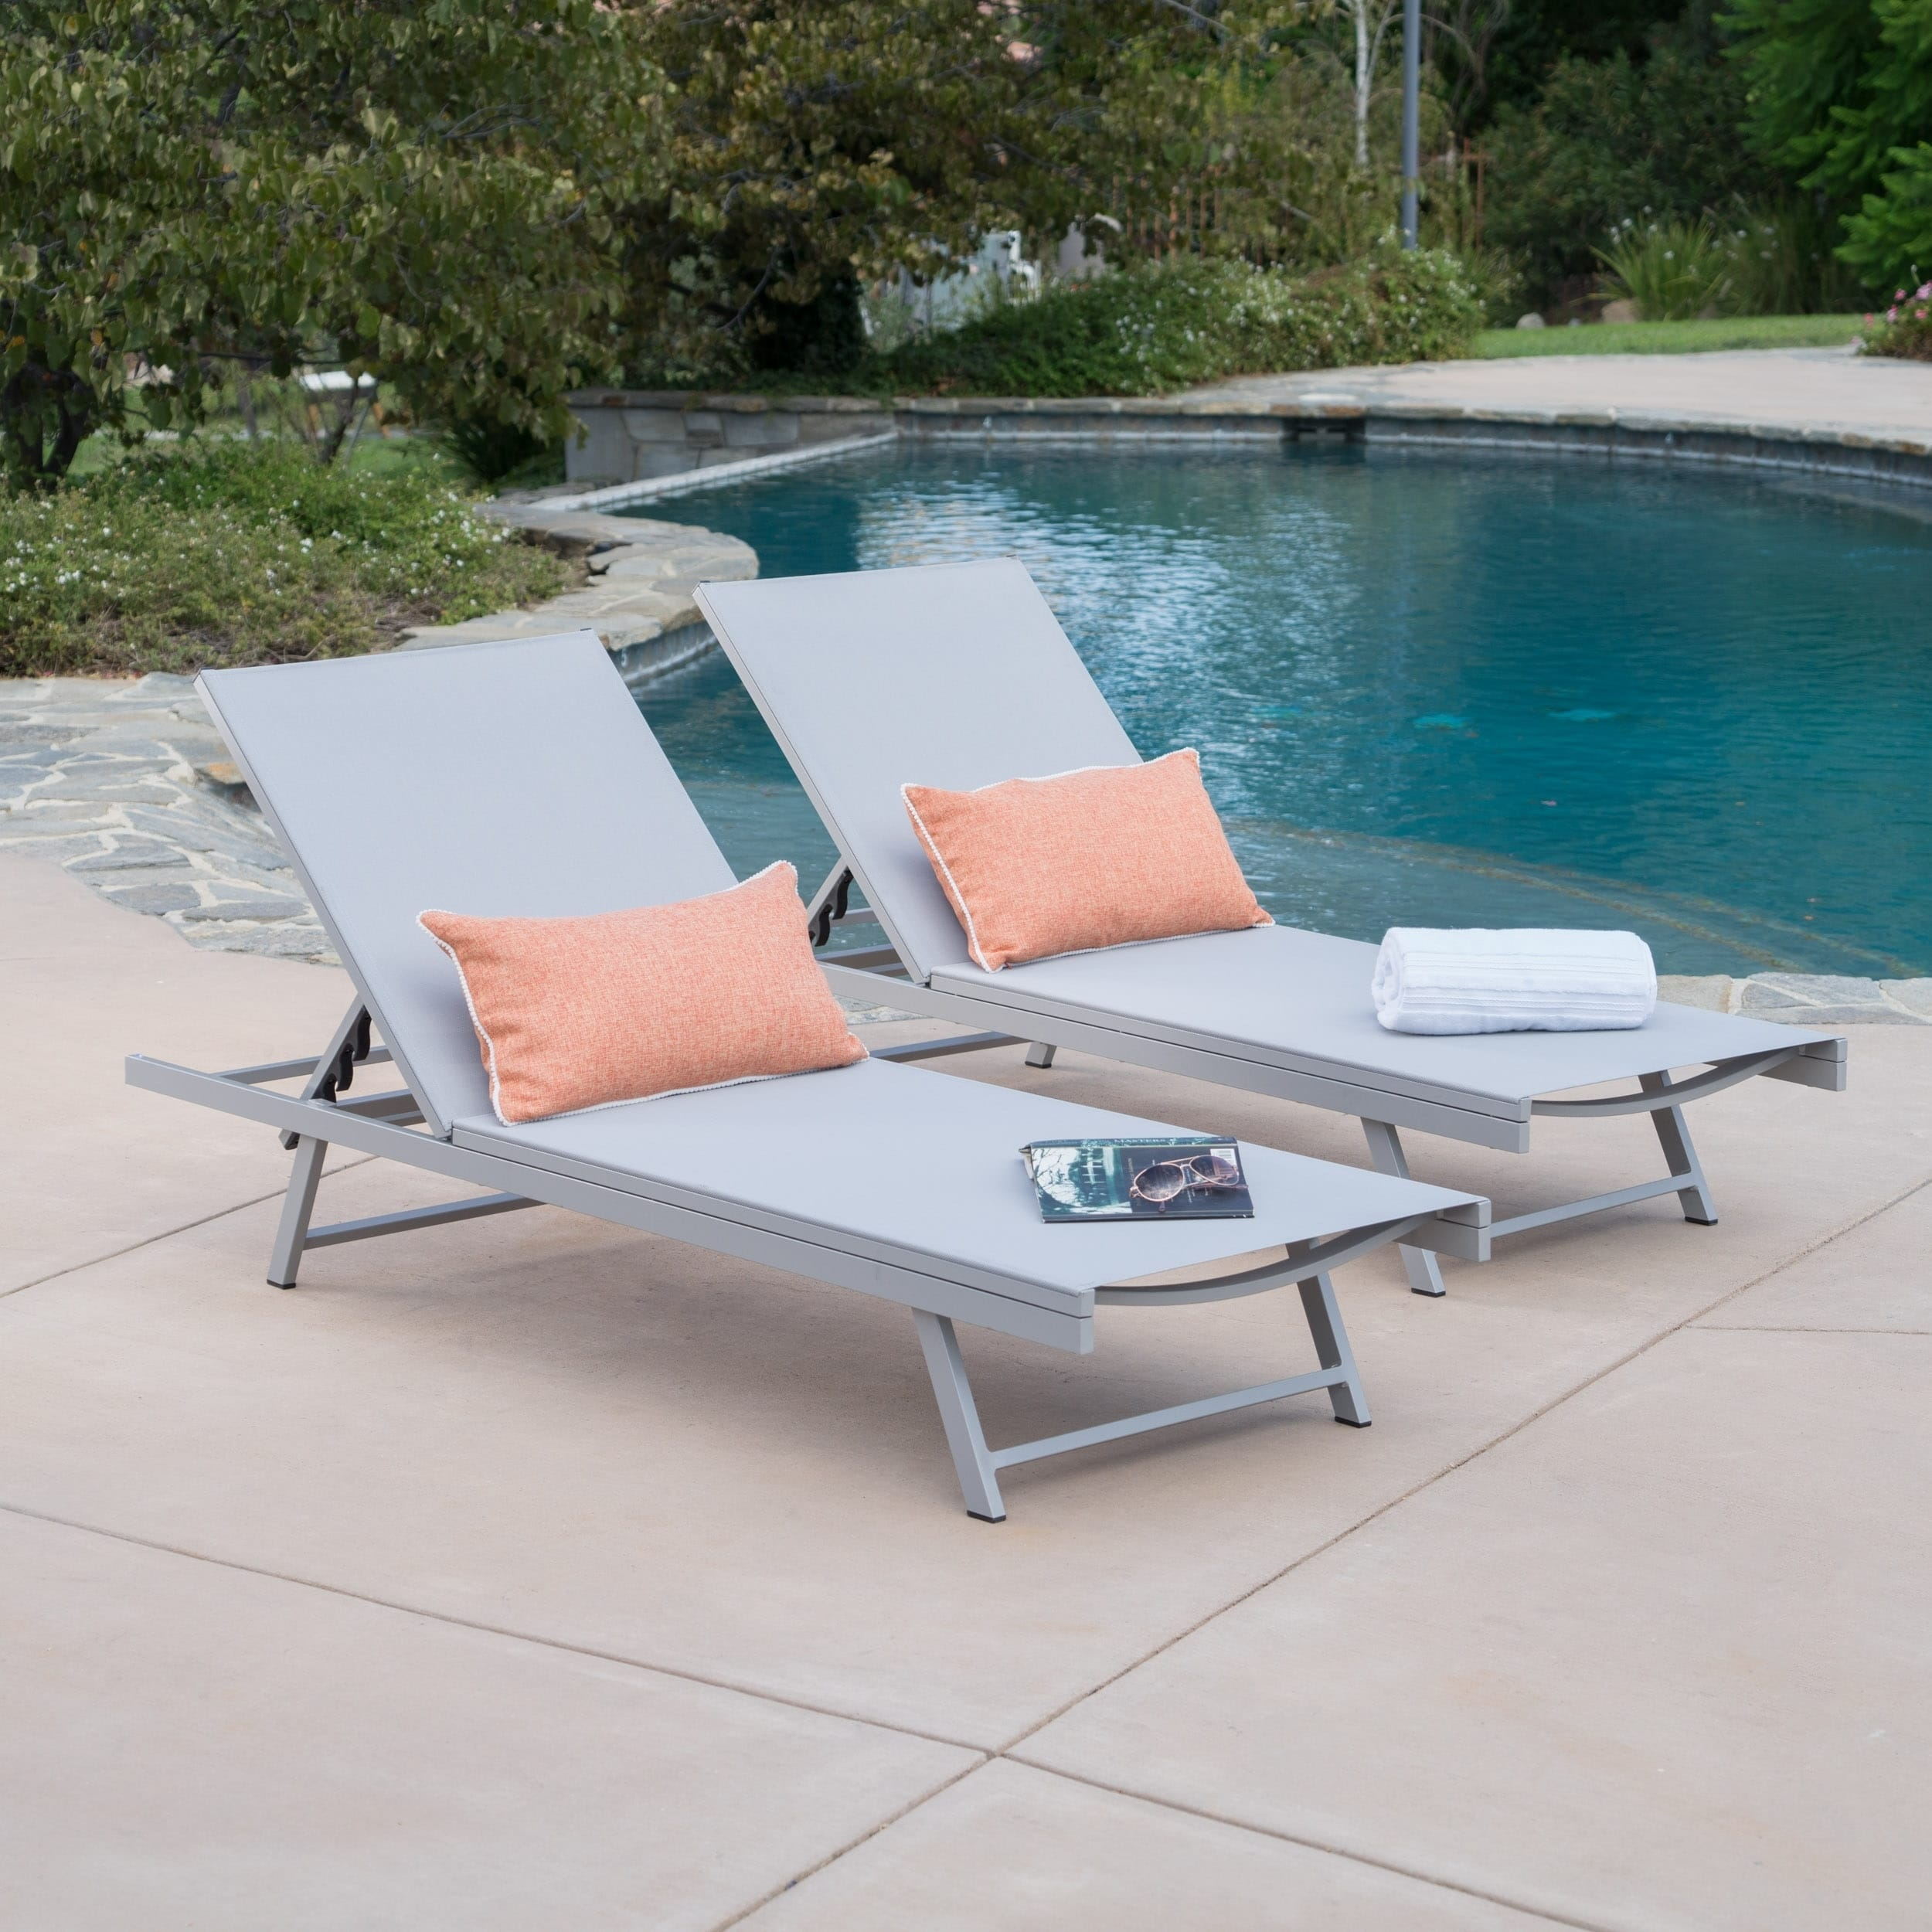 Christopher Knight Home Salton Outdoor Aluminum Chaise Lounge (Set of 2) by